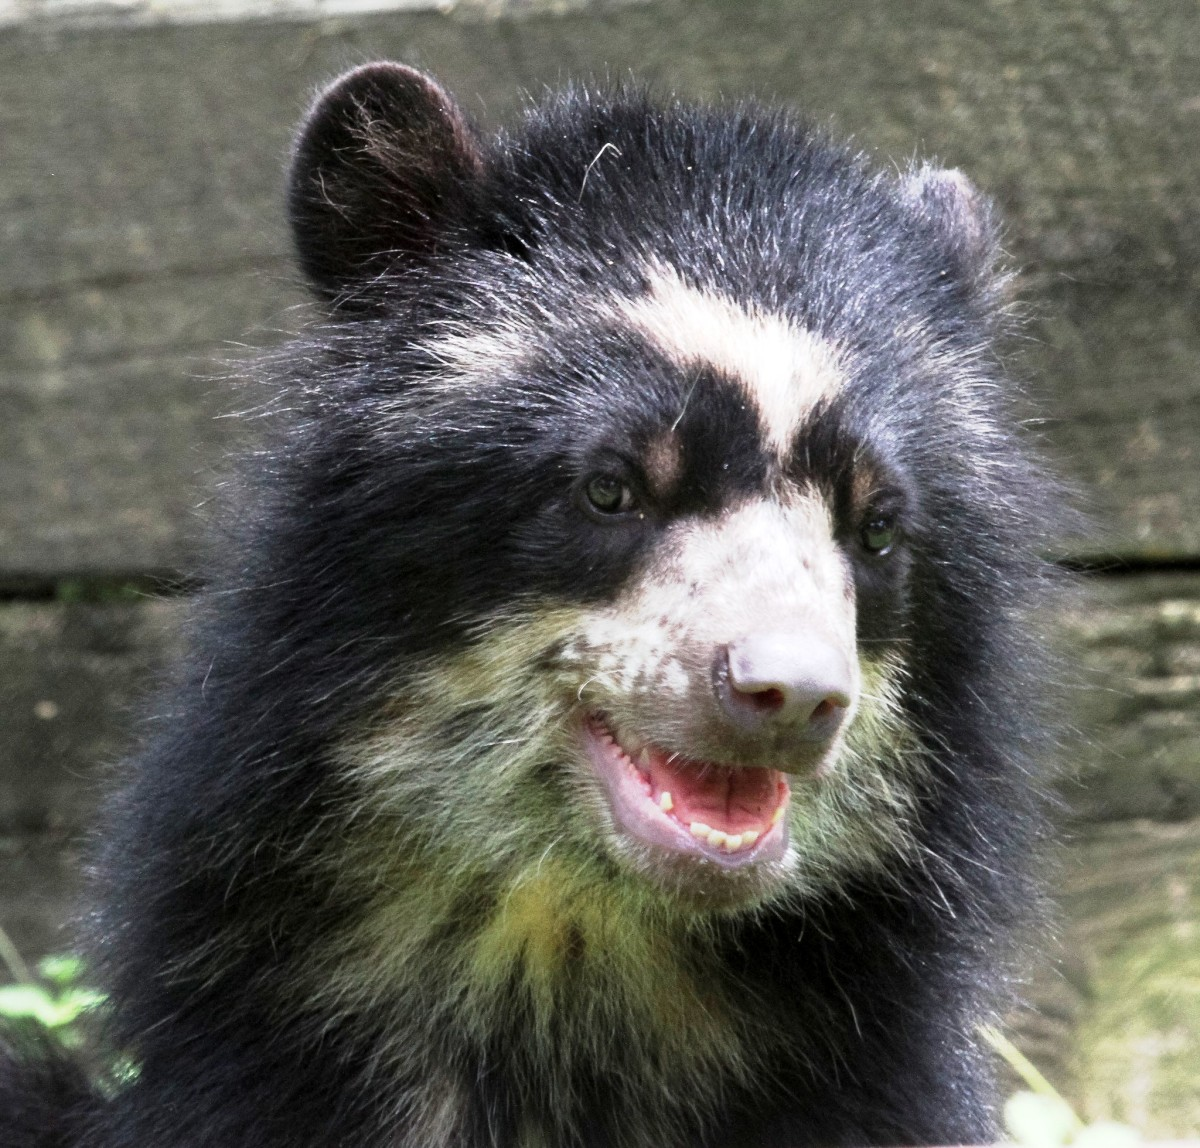 Andean Bear at the National Zoo in Washington DC